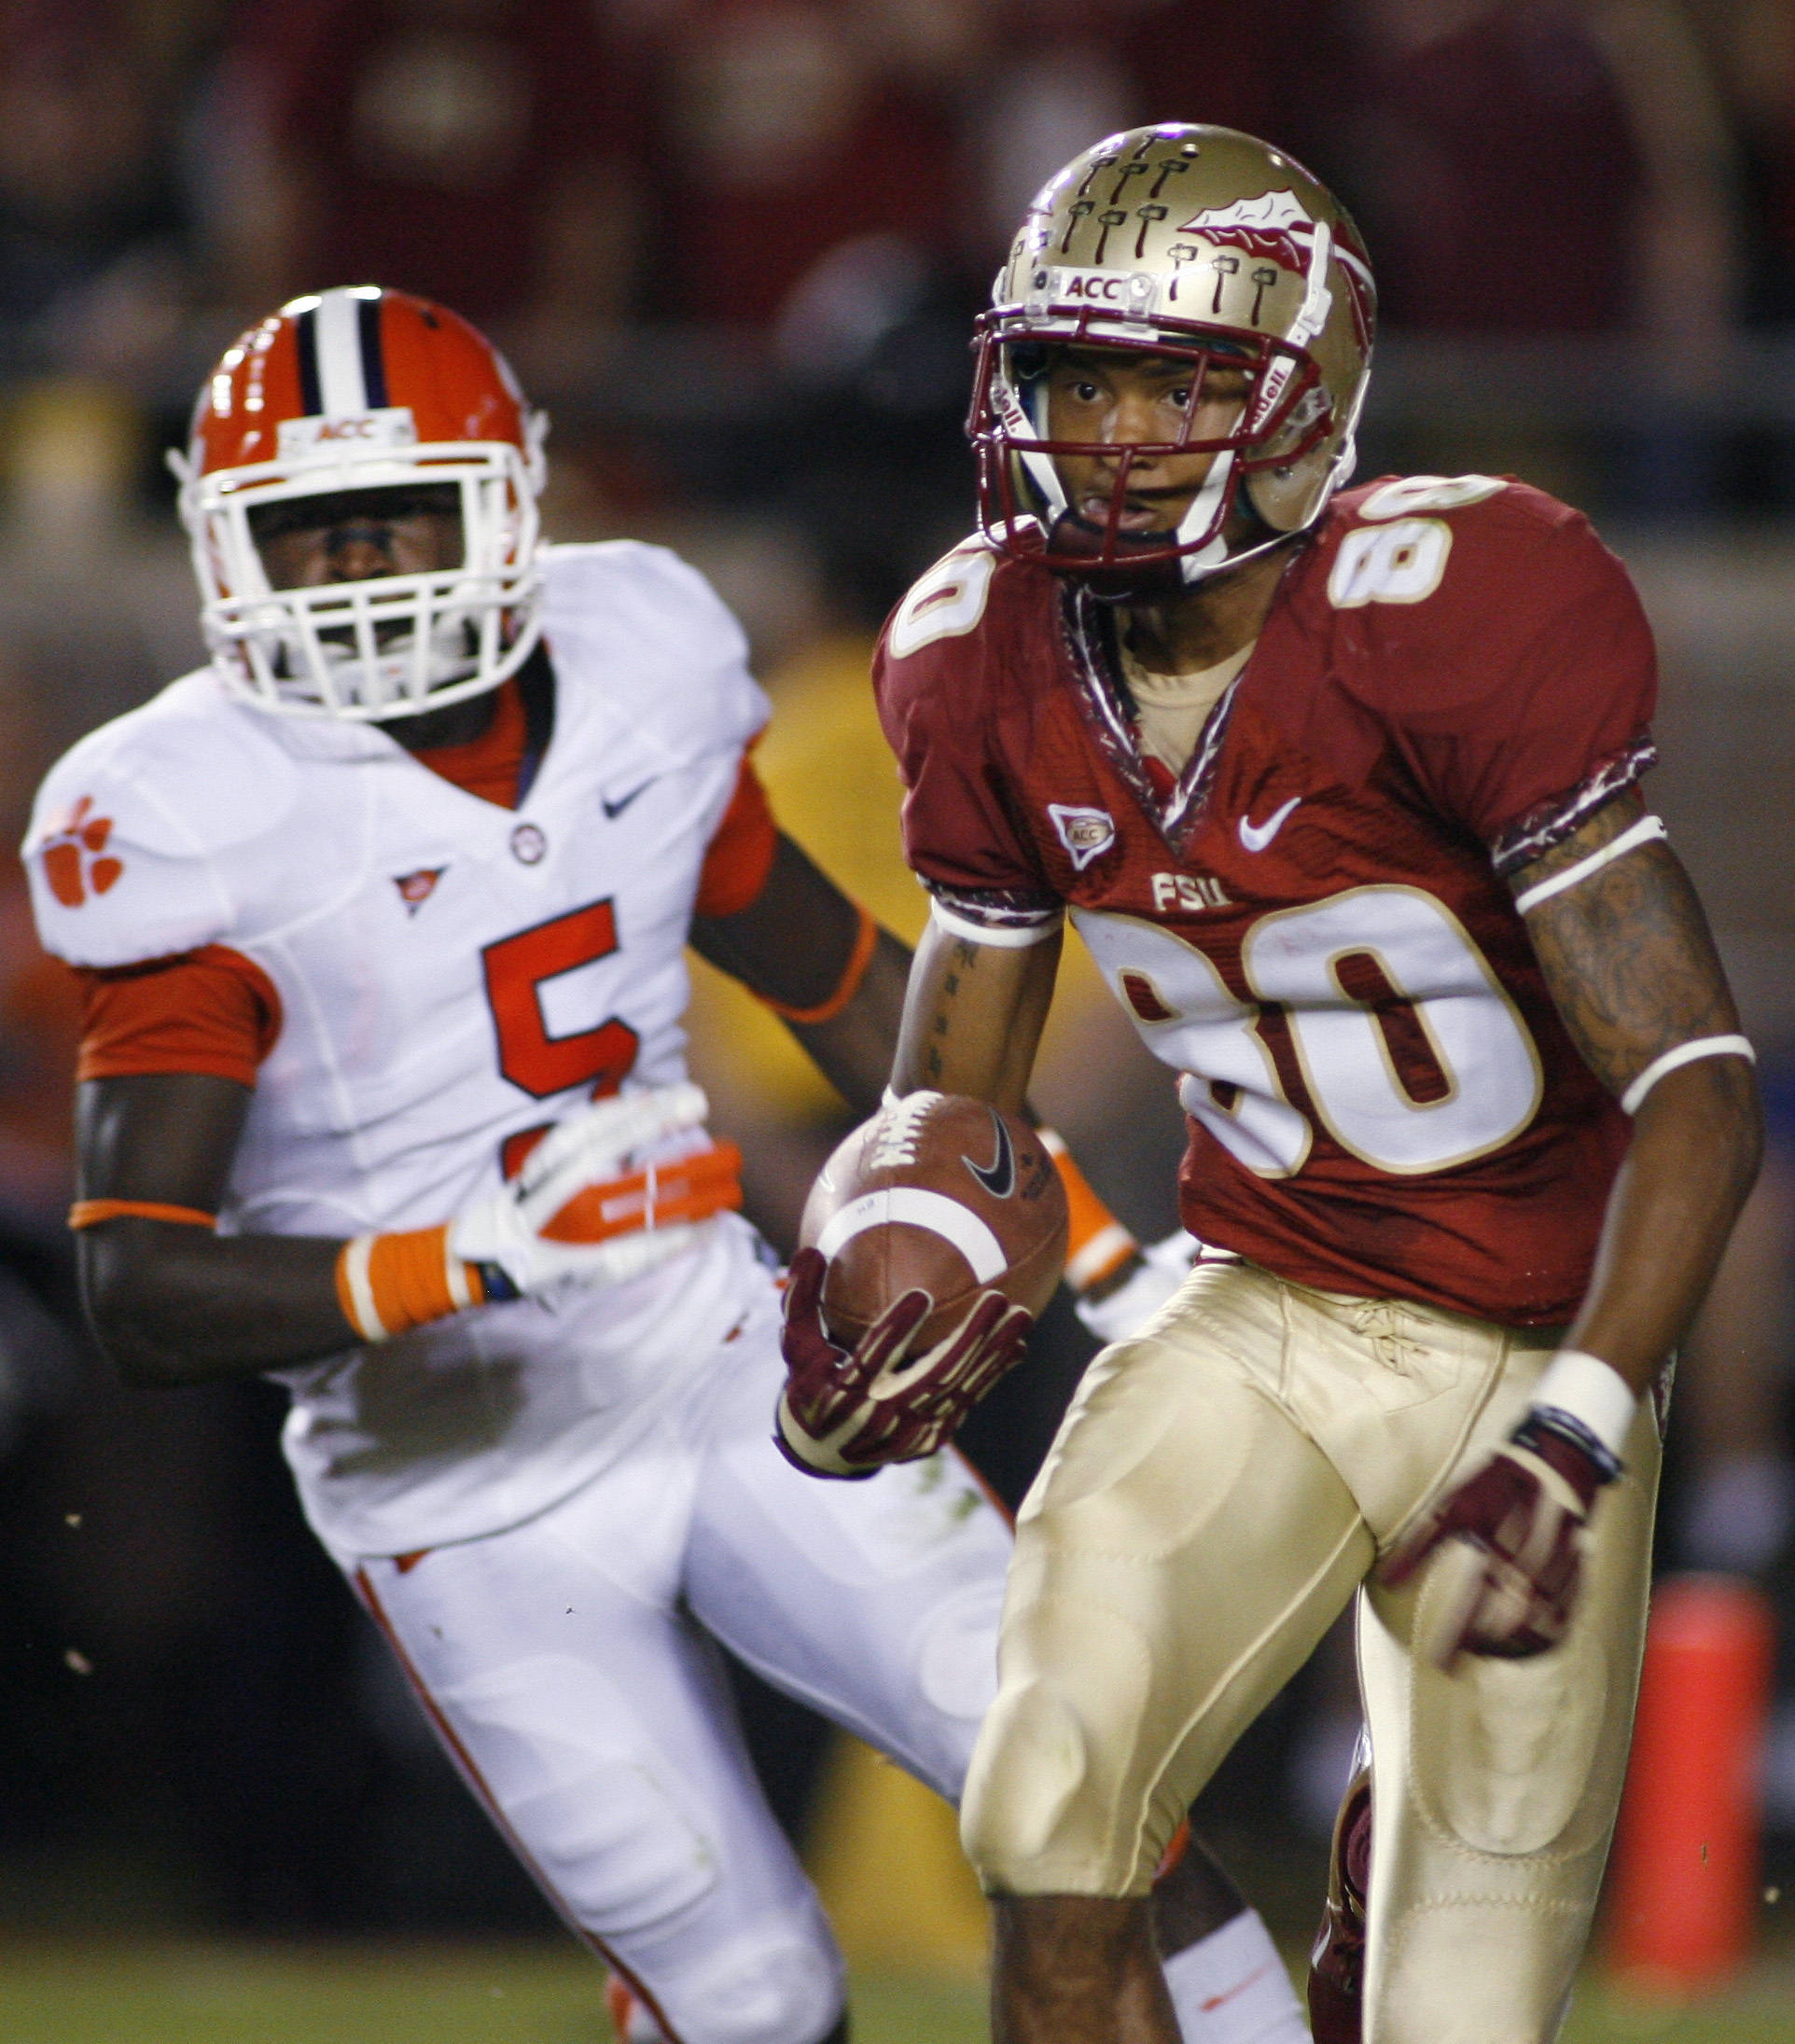 Florida State wide receiver Rashad Greene (80) returns a punt for 30 yards past Clemson safety Jonathan Meeks (5). (AP Photo/Phil Sears)